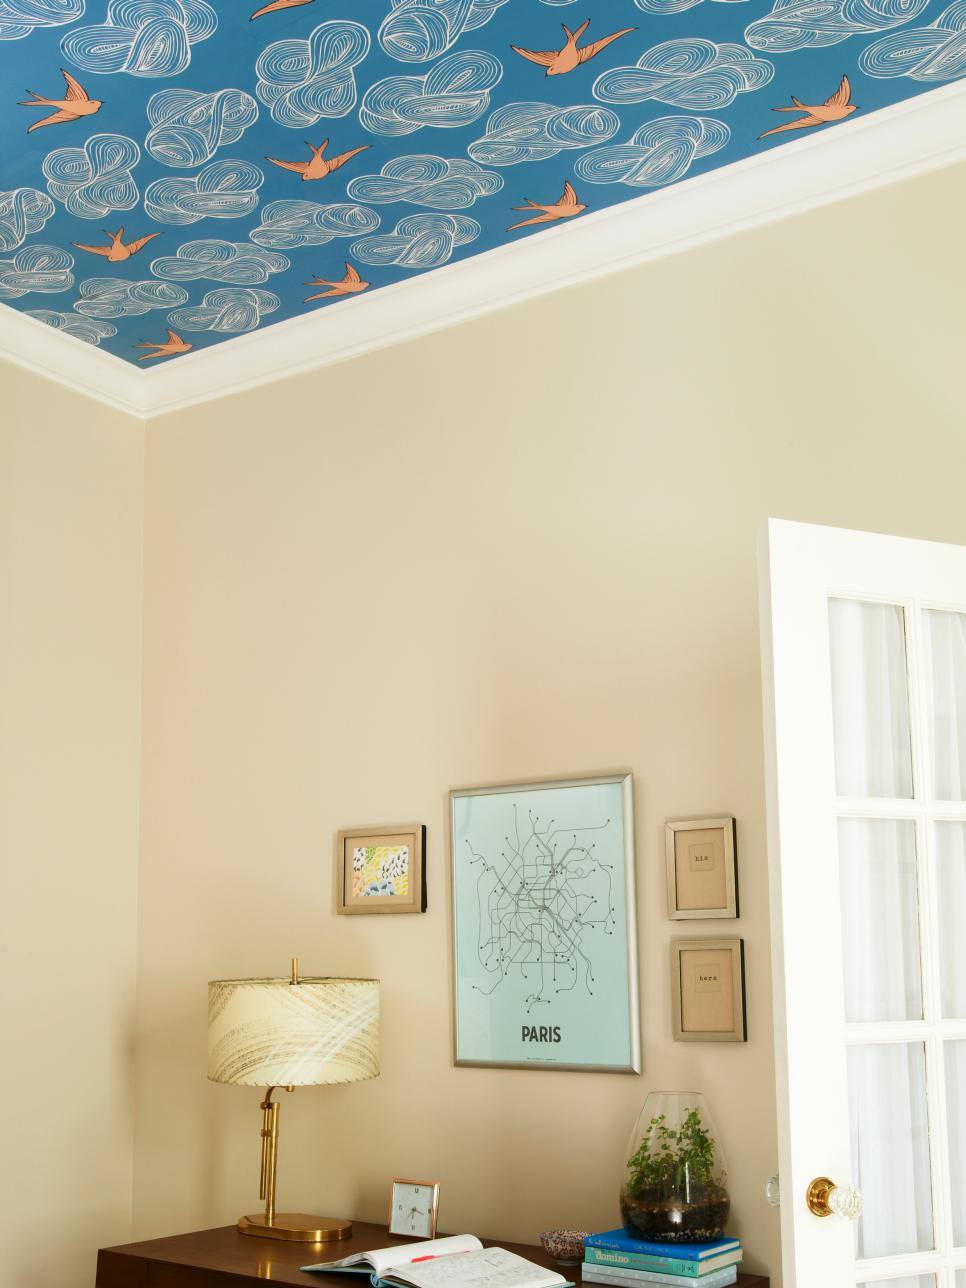 hgtv-bird-wallpaper-on-ceiling